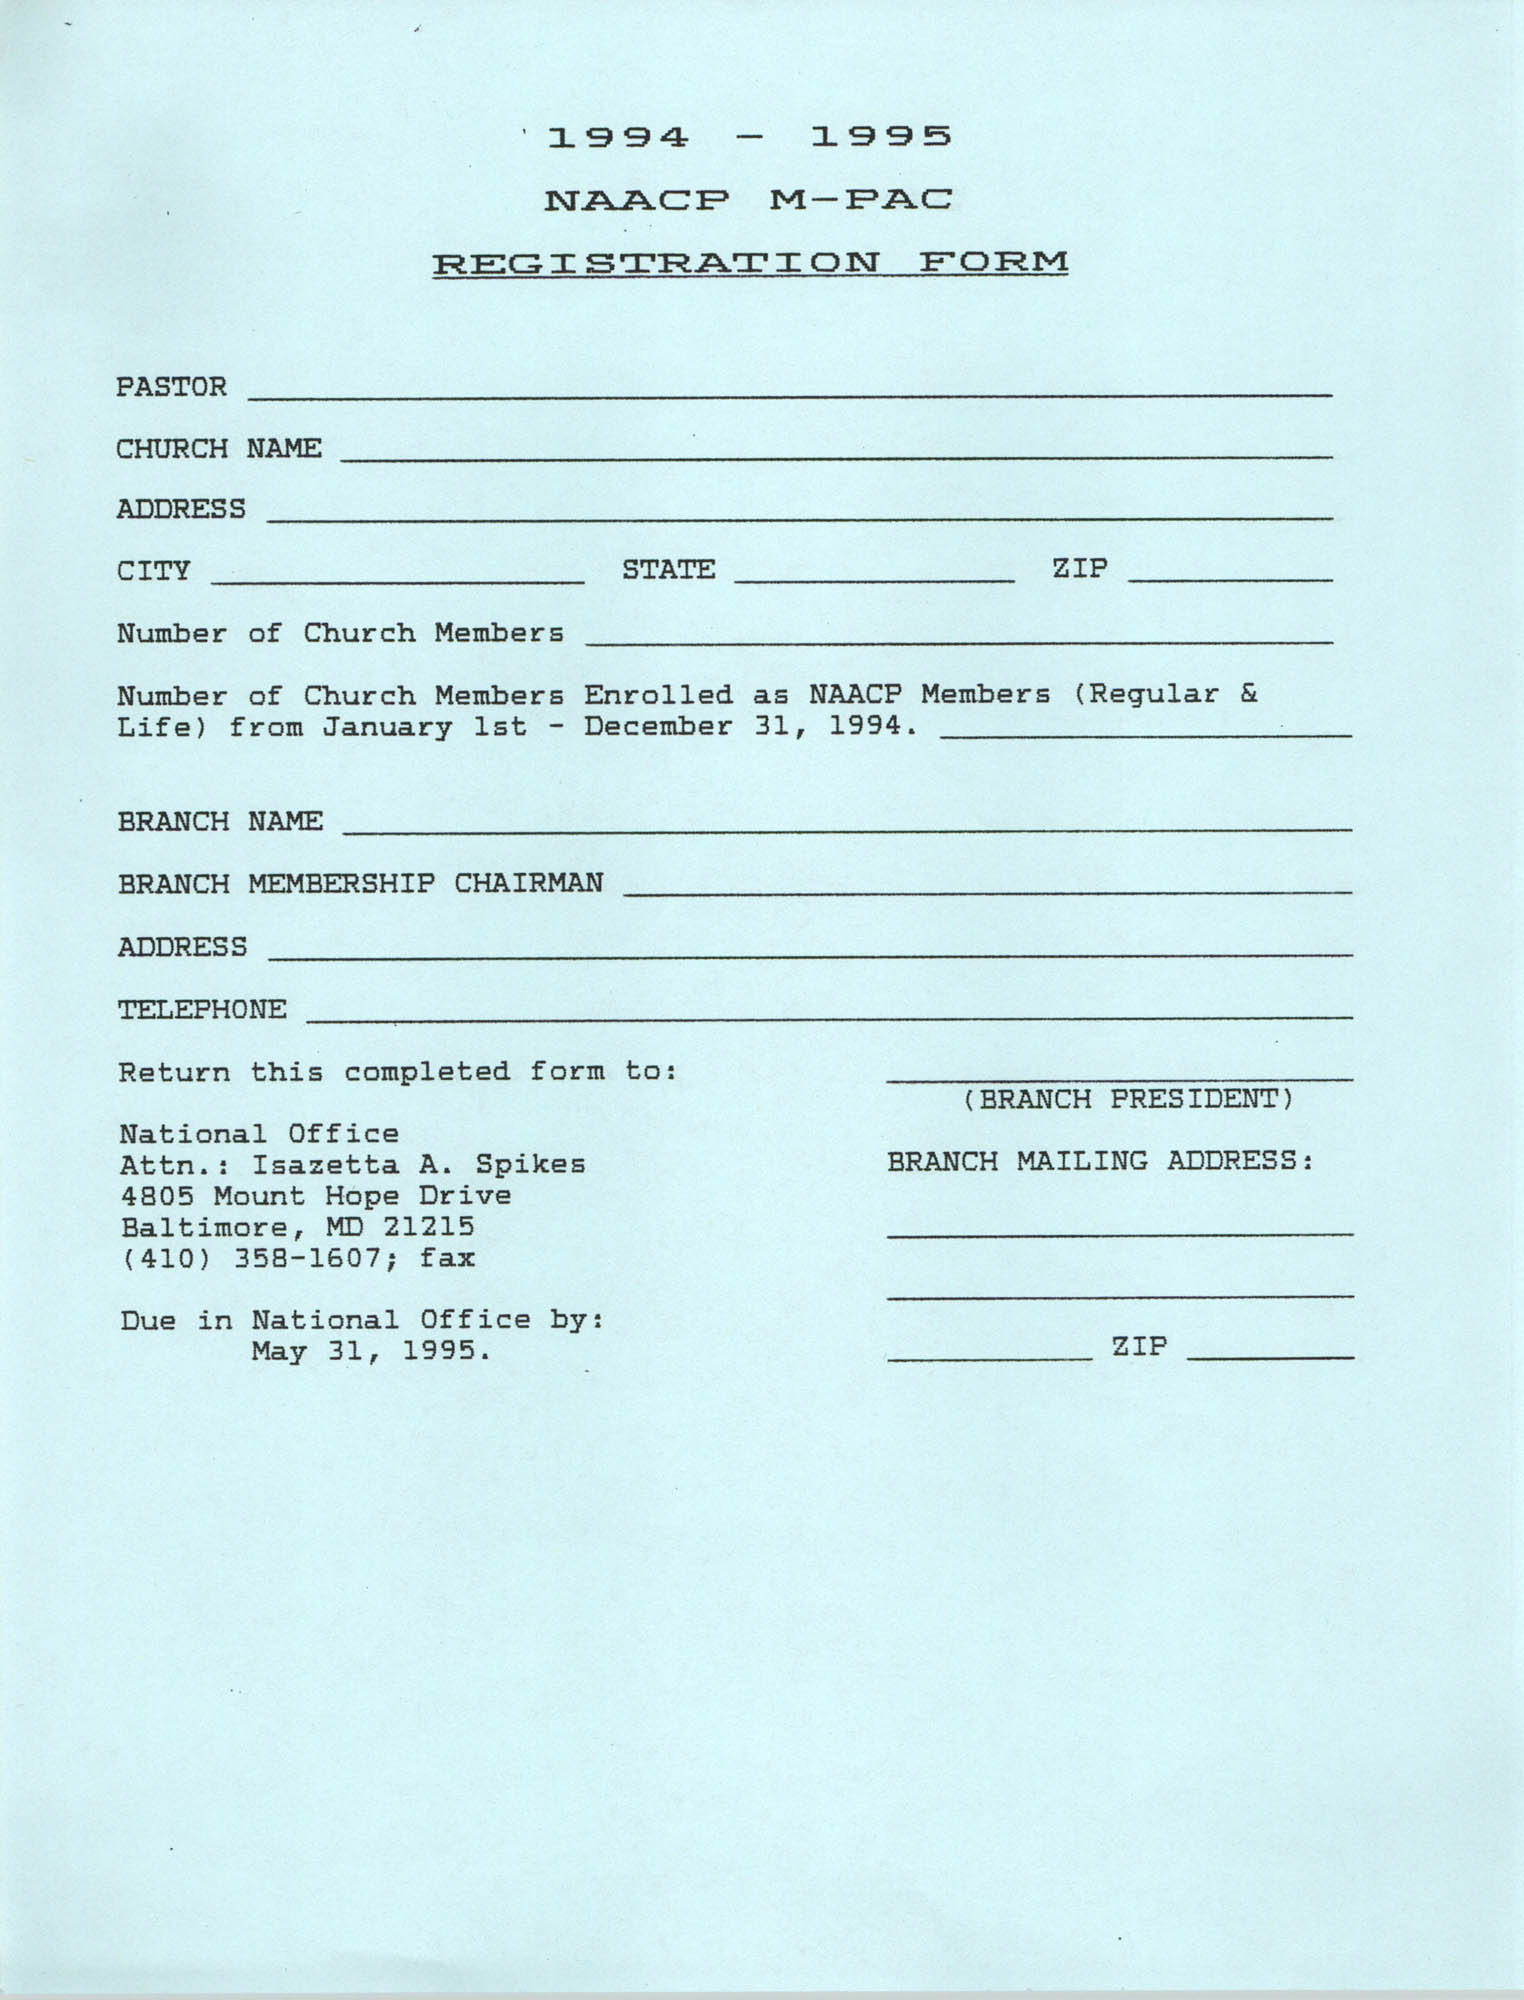 NAACP M-PAC Registration Form